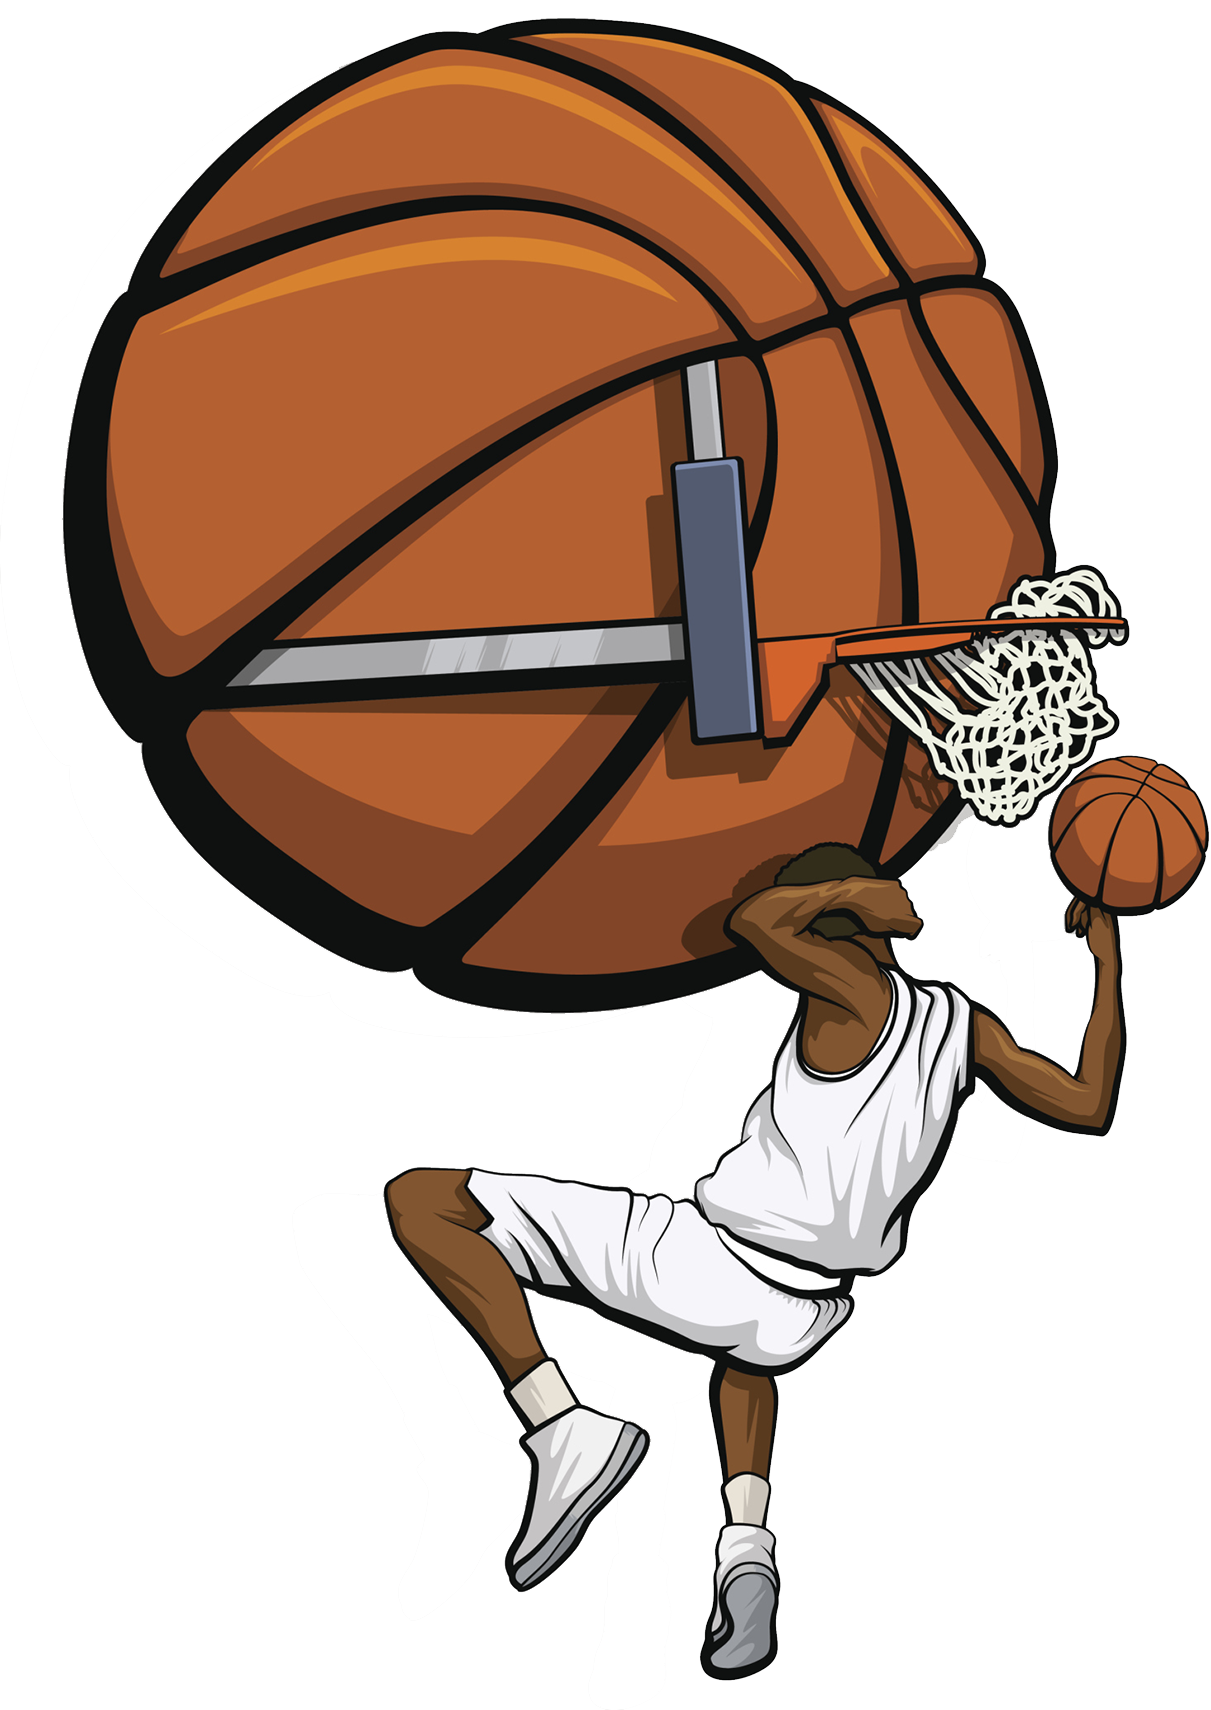 Basketball dunk clipart banner free stock Basketball Slam dunk Clip art - Basketball comics 1211*1710 ... banner free stock